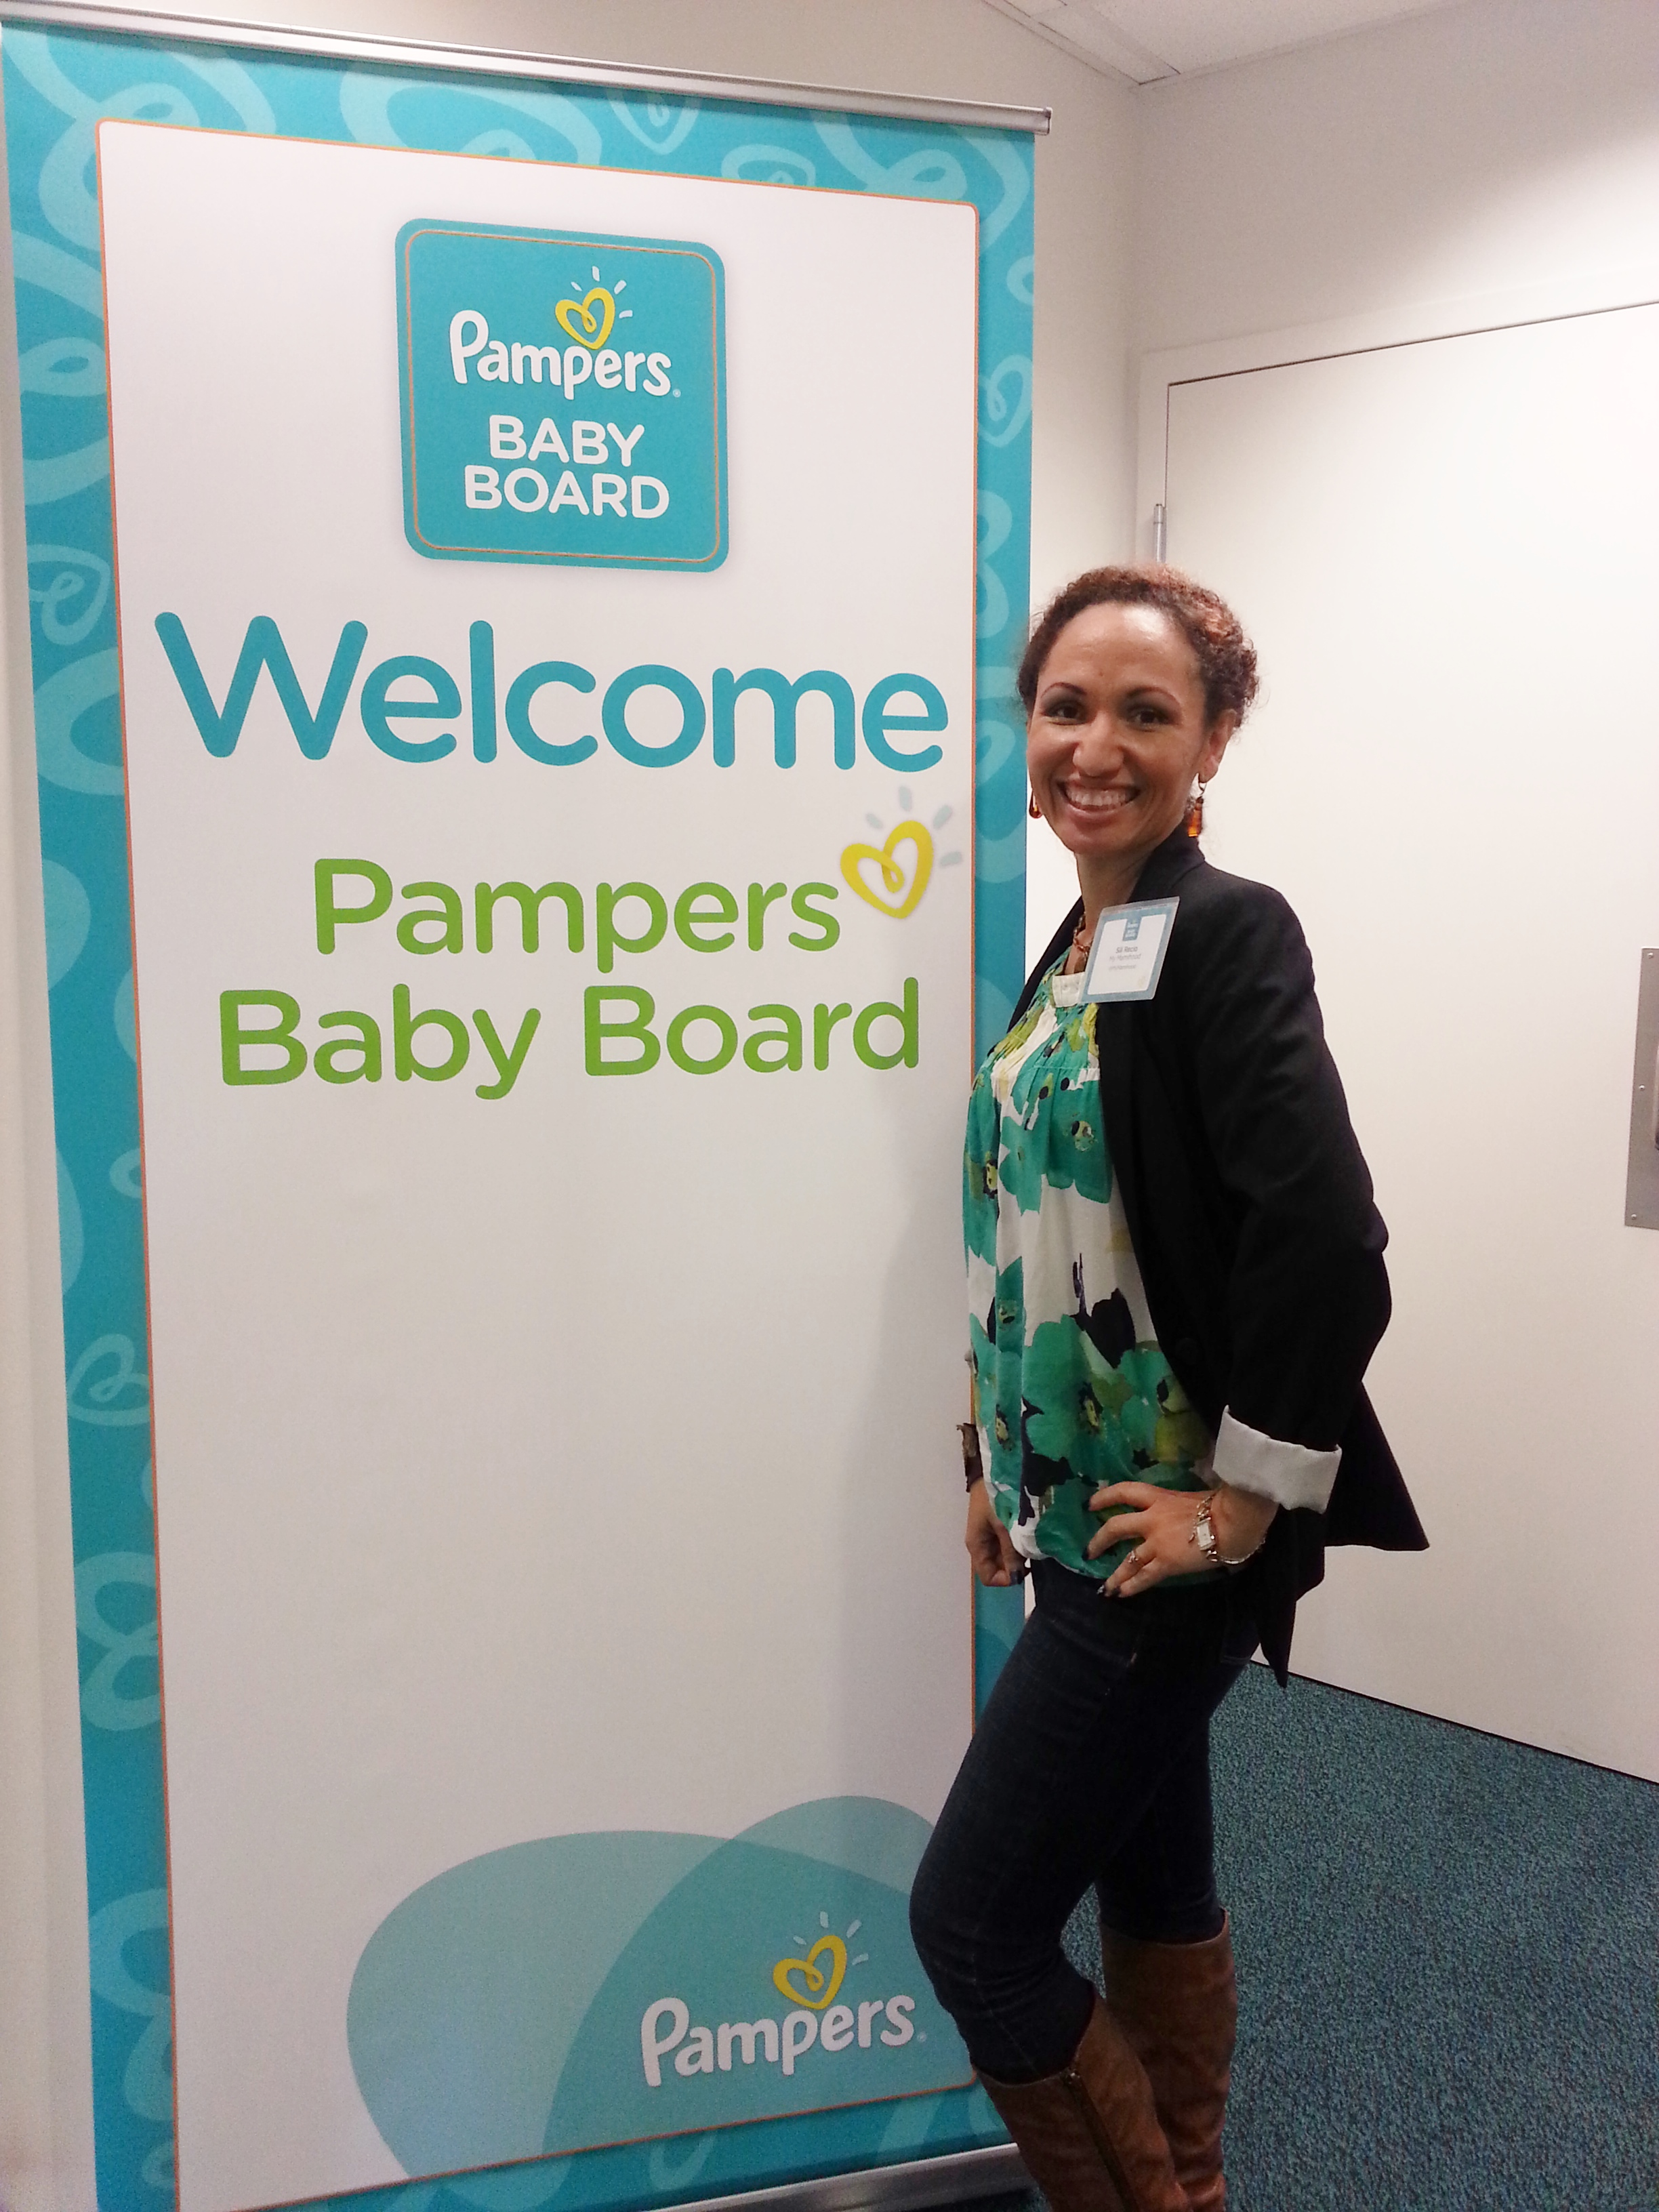 Pampers_Welcome